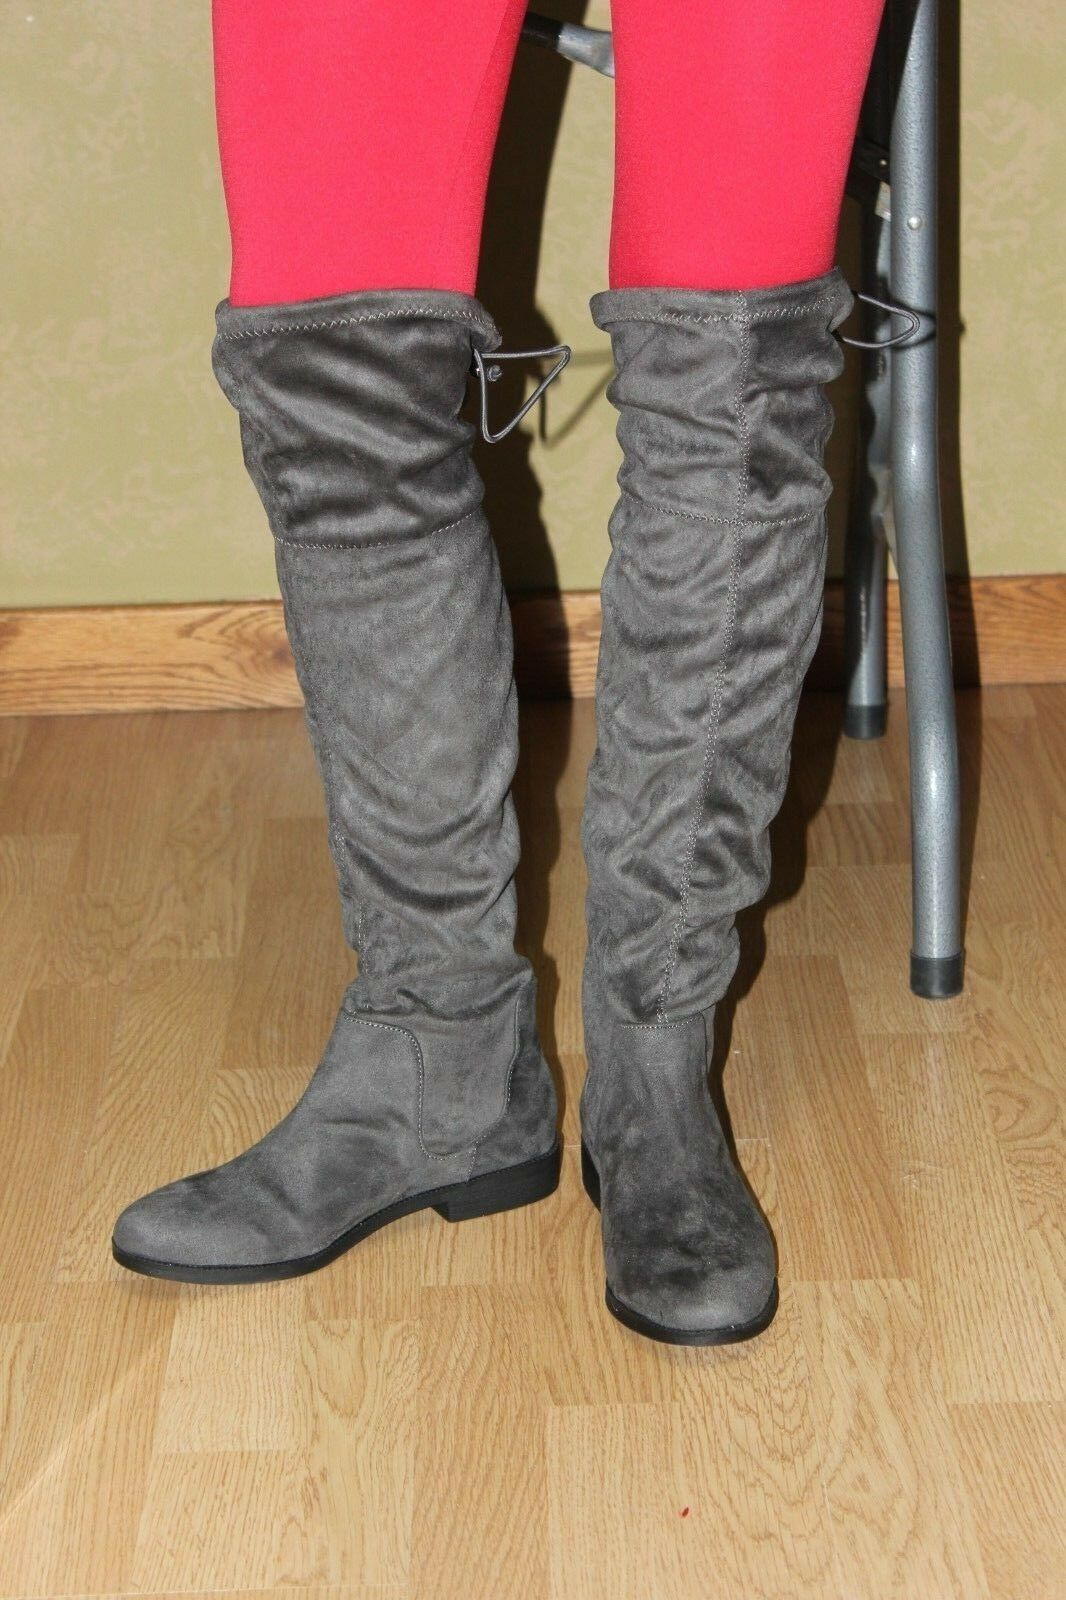 Women's Sociology knee high boots, Faux Suede Fabric, Grey Micro Size 8M